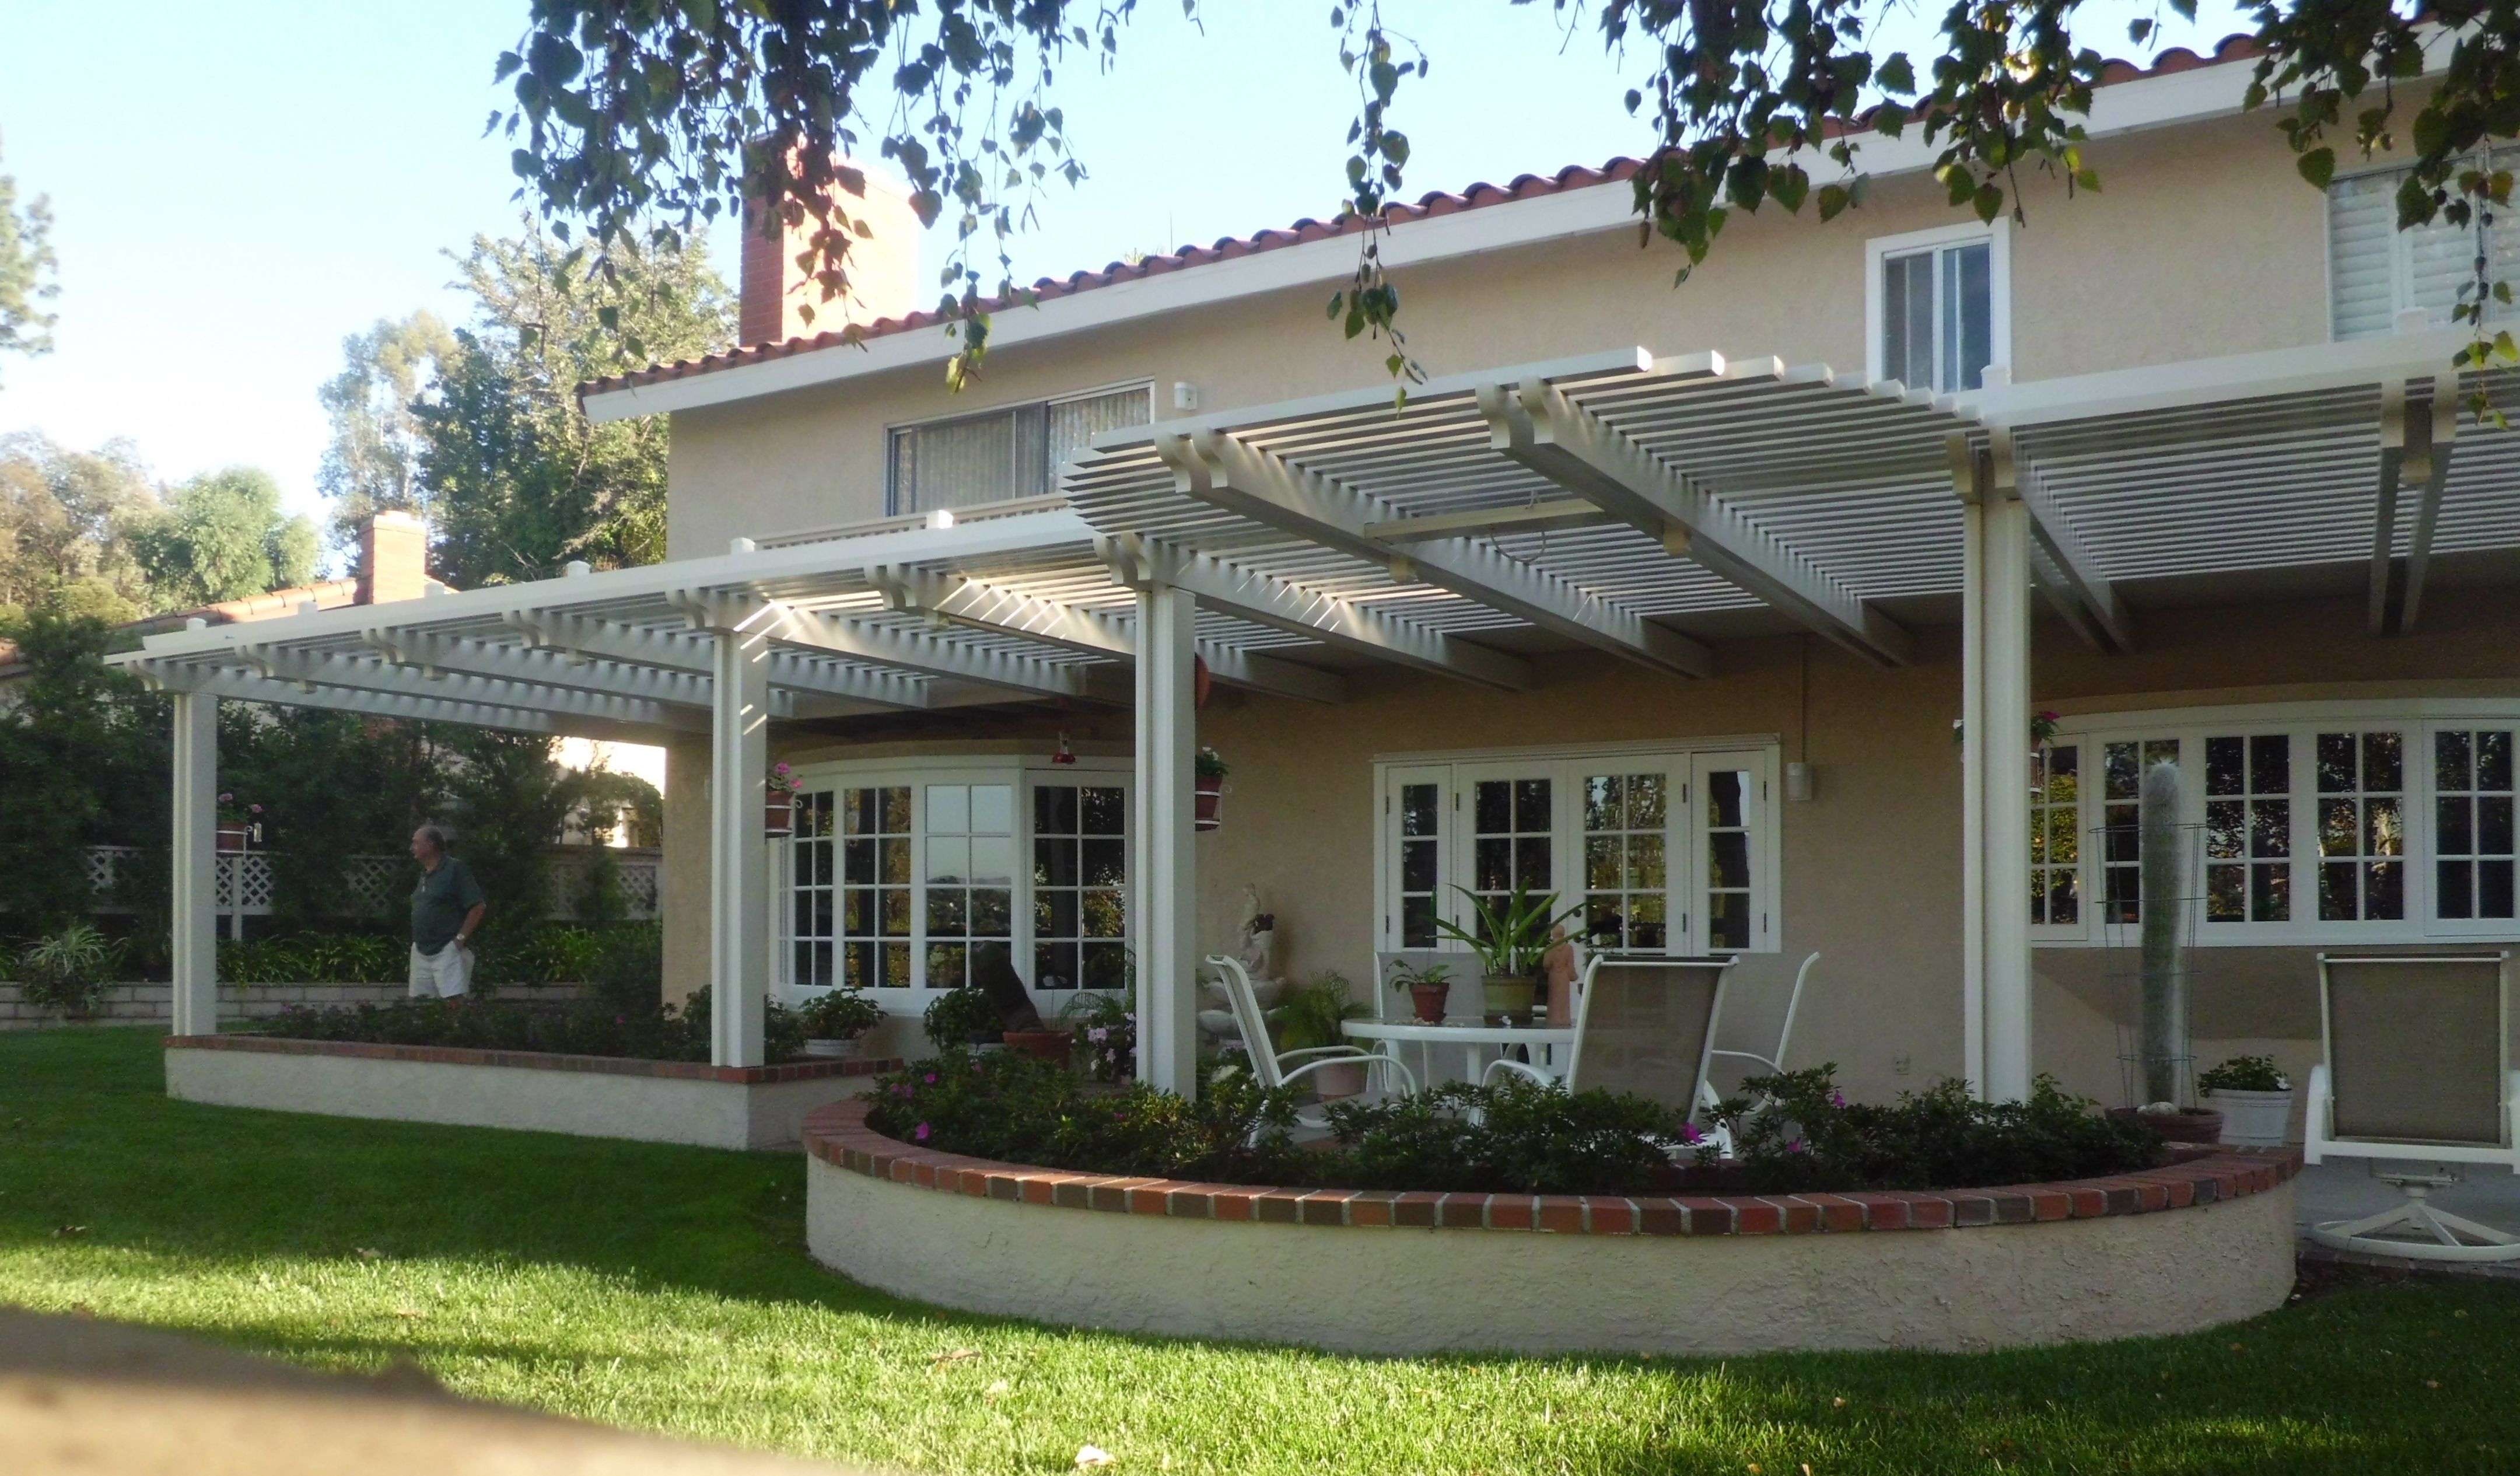 Covered Patio Ideas Open Patio Cover With Radius The Patio Man intended for Covered Patio Ideas For Backyard